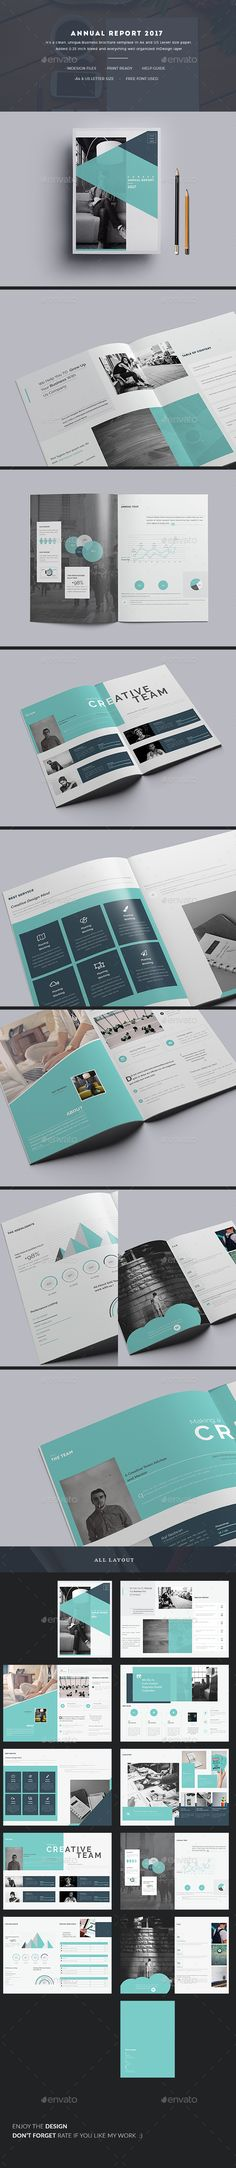 238 Best Annual Report Template Design images in 2019 Corporate